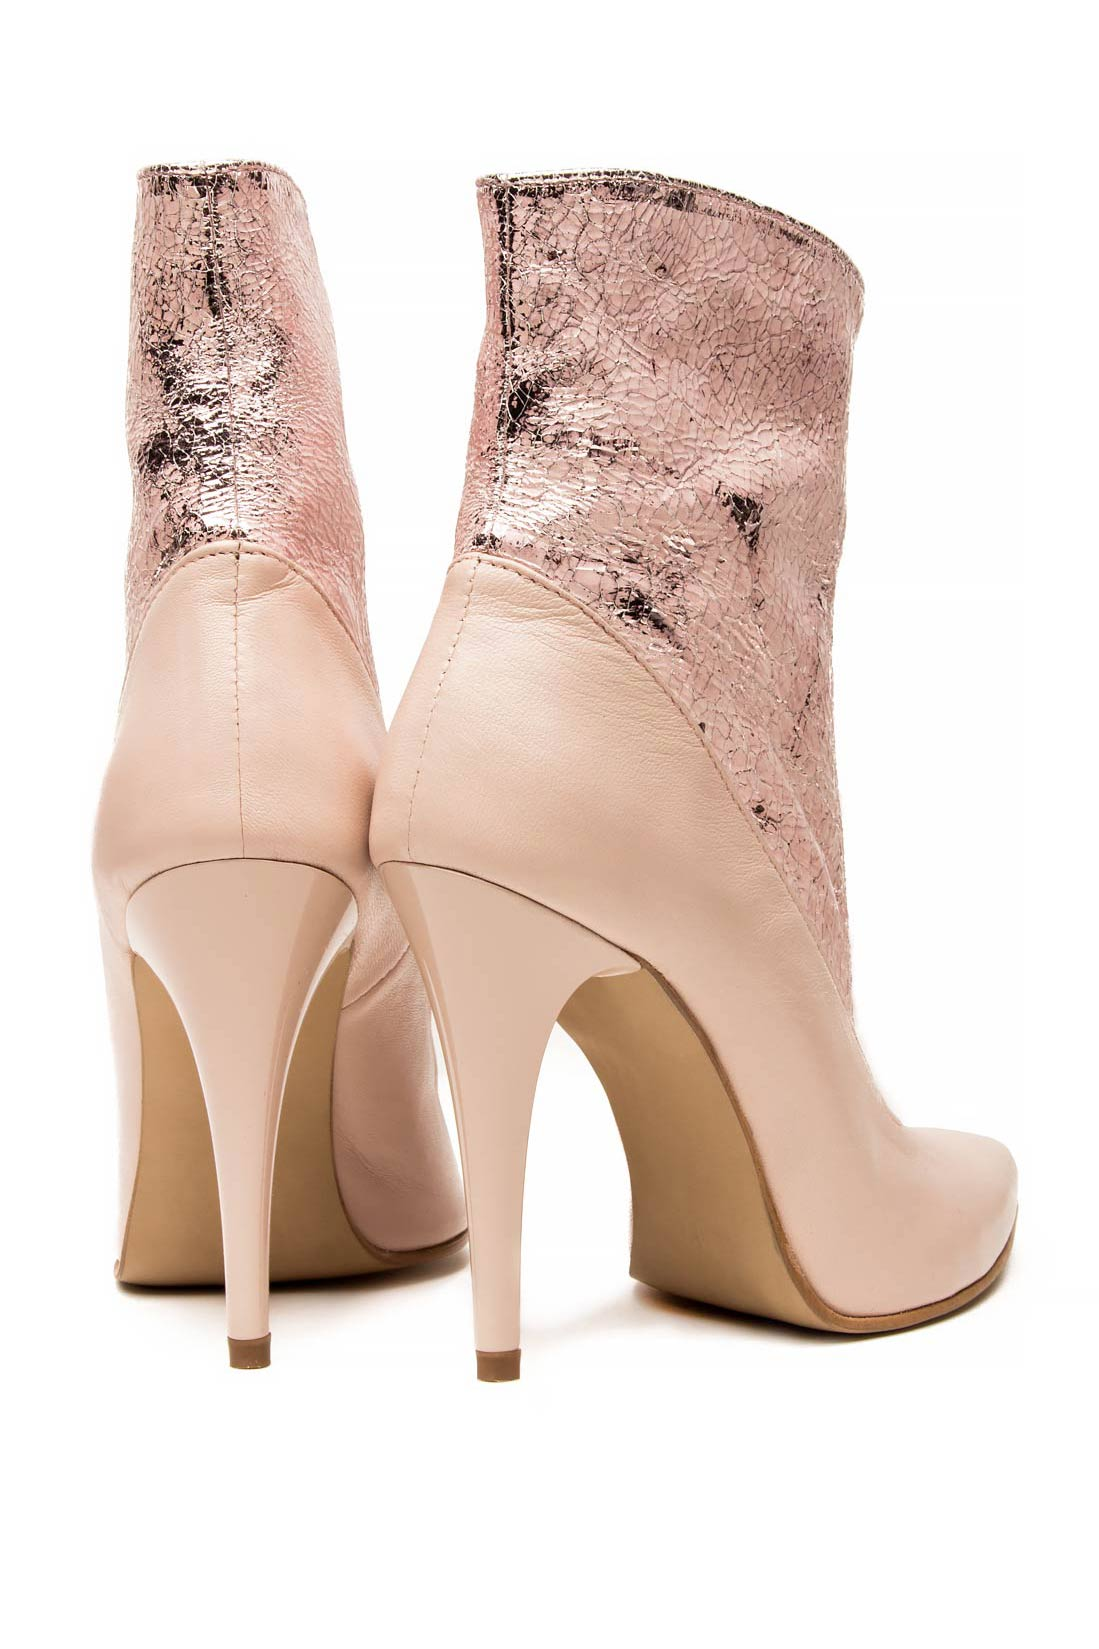 Leather ankle boots Mono Shoes by Dumitru Mihaica image 2